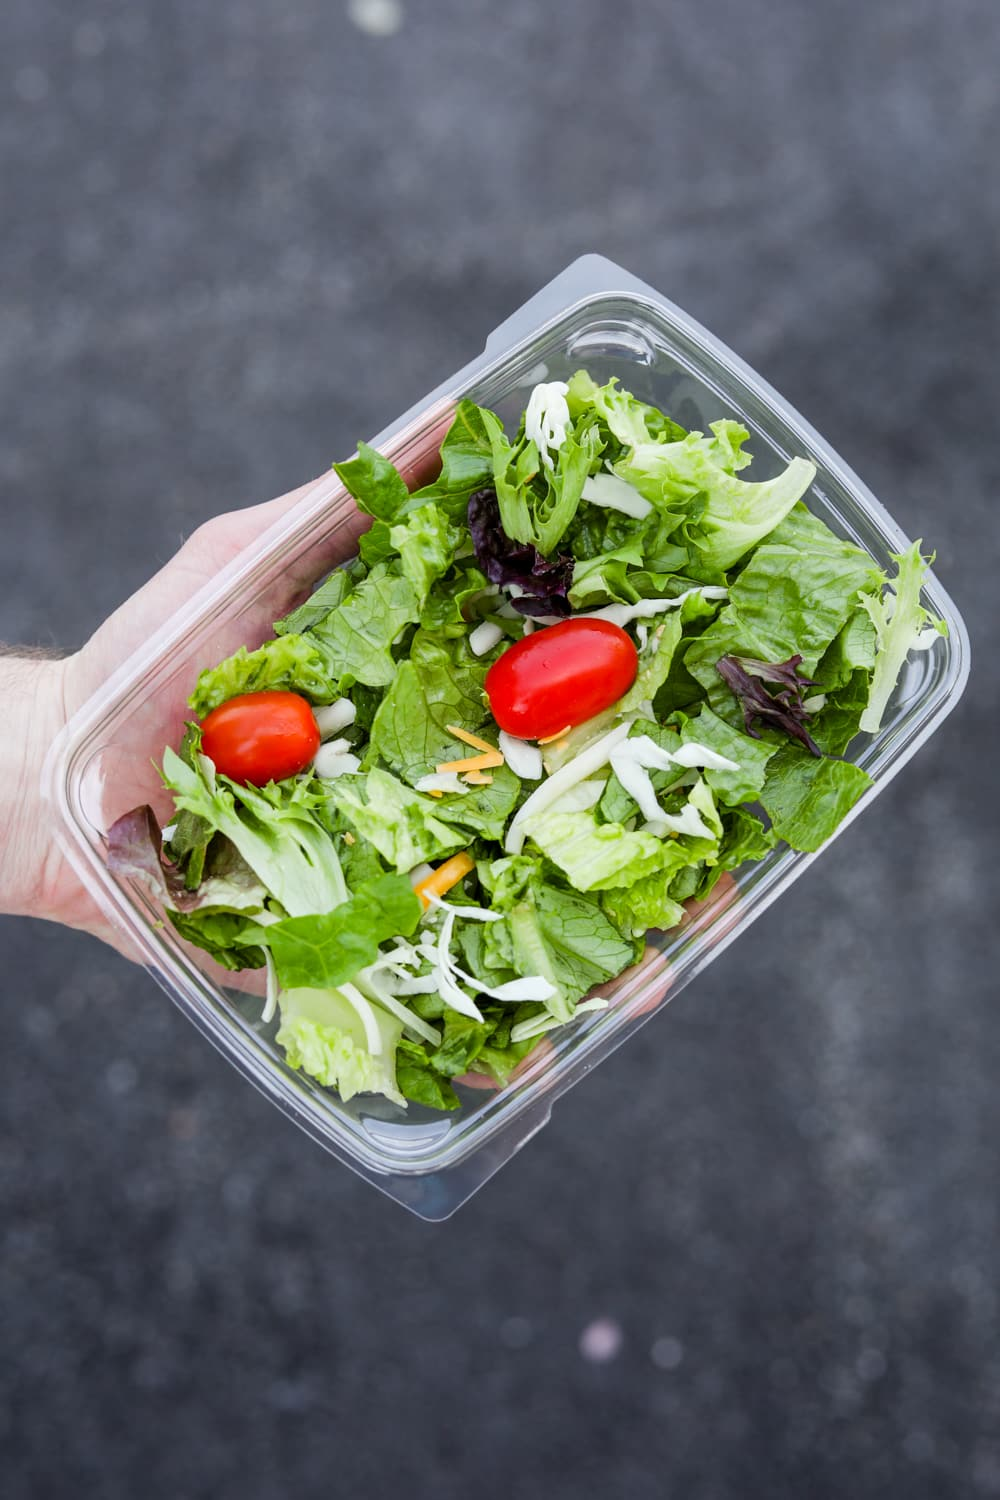 A hand holding a container of side salad from Chick-fil-A.